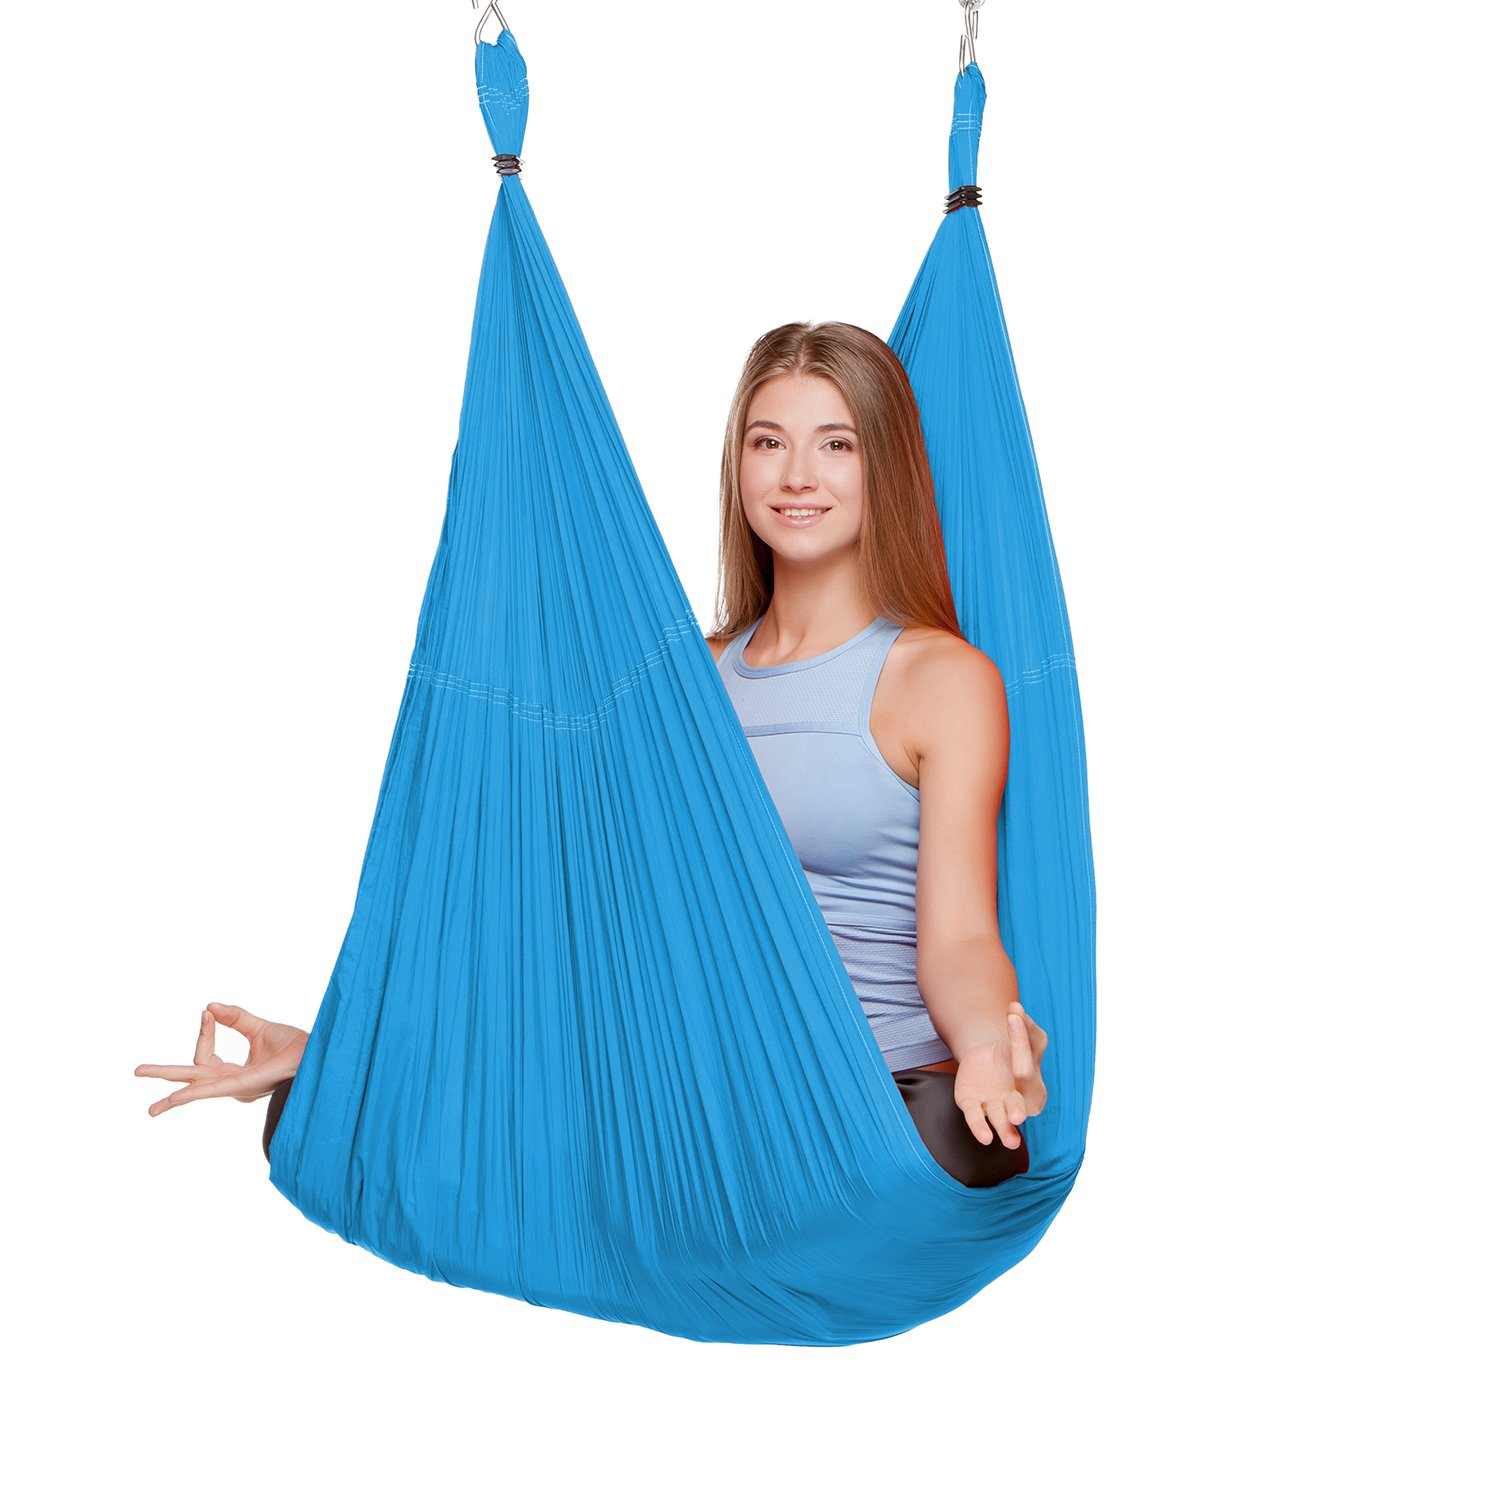 EUROSPORTS 2000 lbs Capacity High Elastic Large Size(L:197in W:110in) Silk Fabric Aerial Flying Yoga Swing/Hammock/Trapeze for Air Yoga Inversion Exercises(5m x 2.8m)